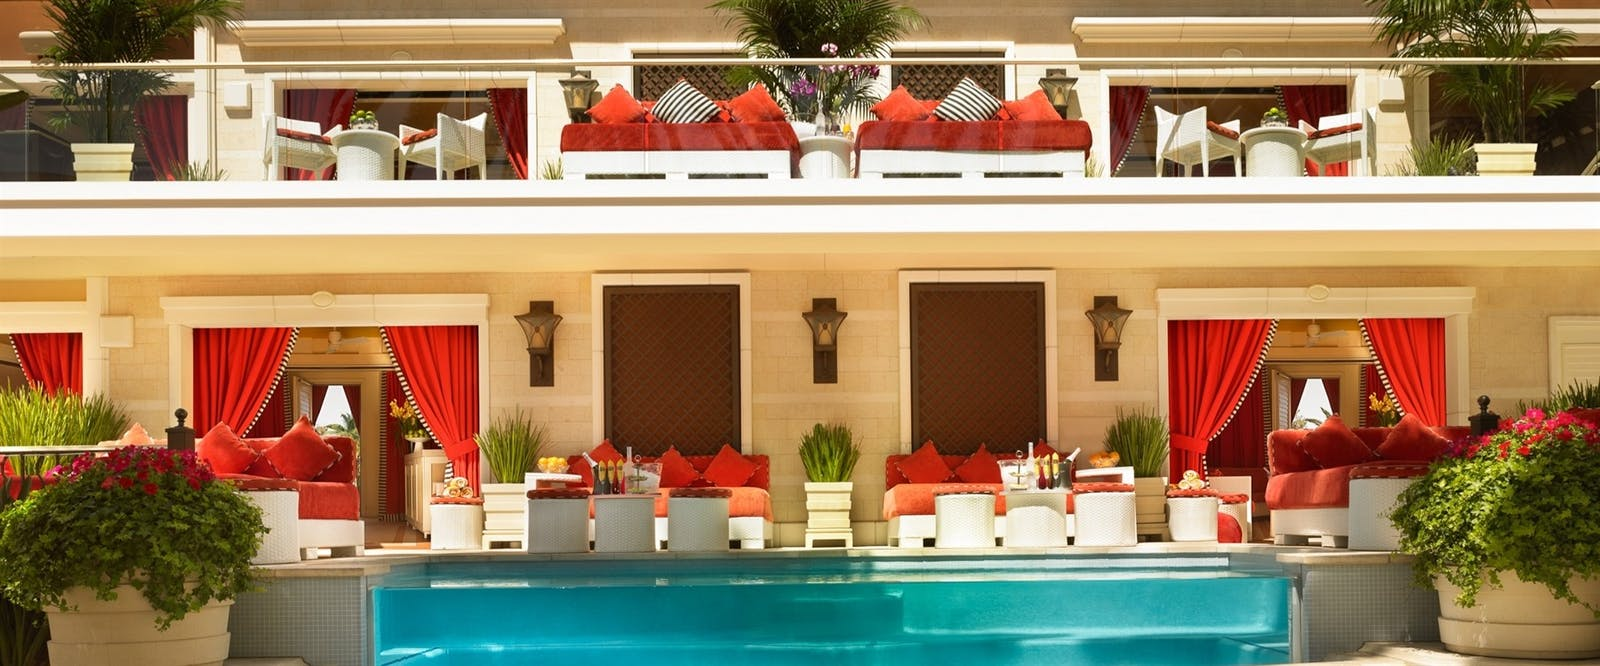 Beach Club Bungalow at Encore At Wynn Las Vegas